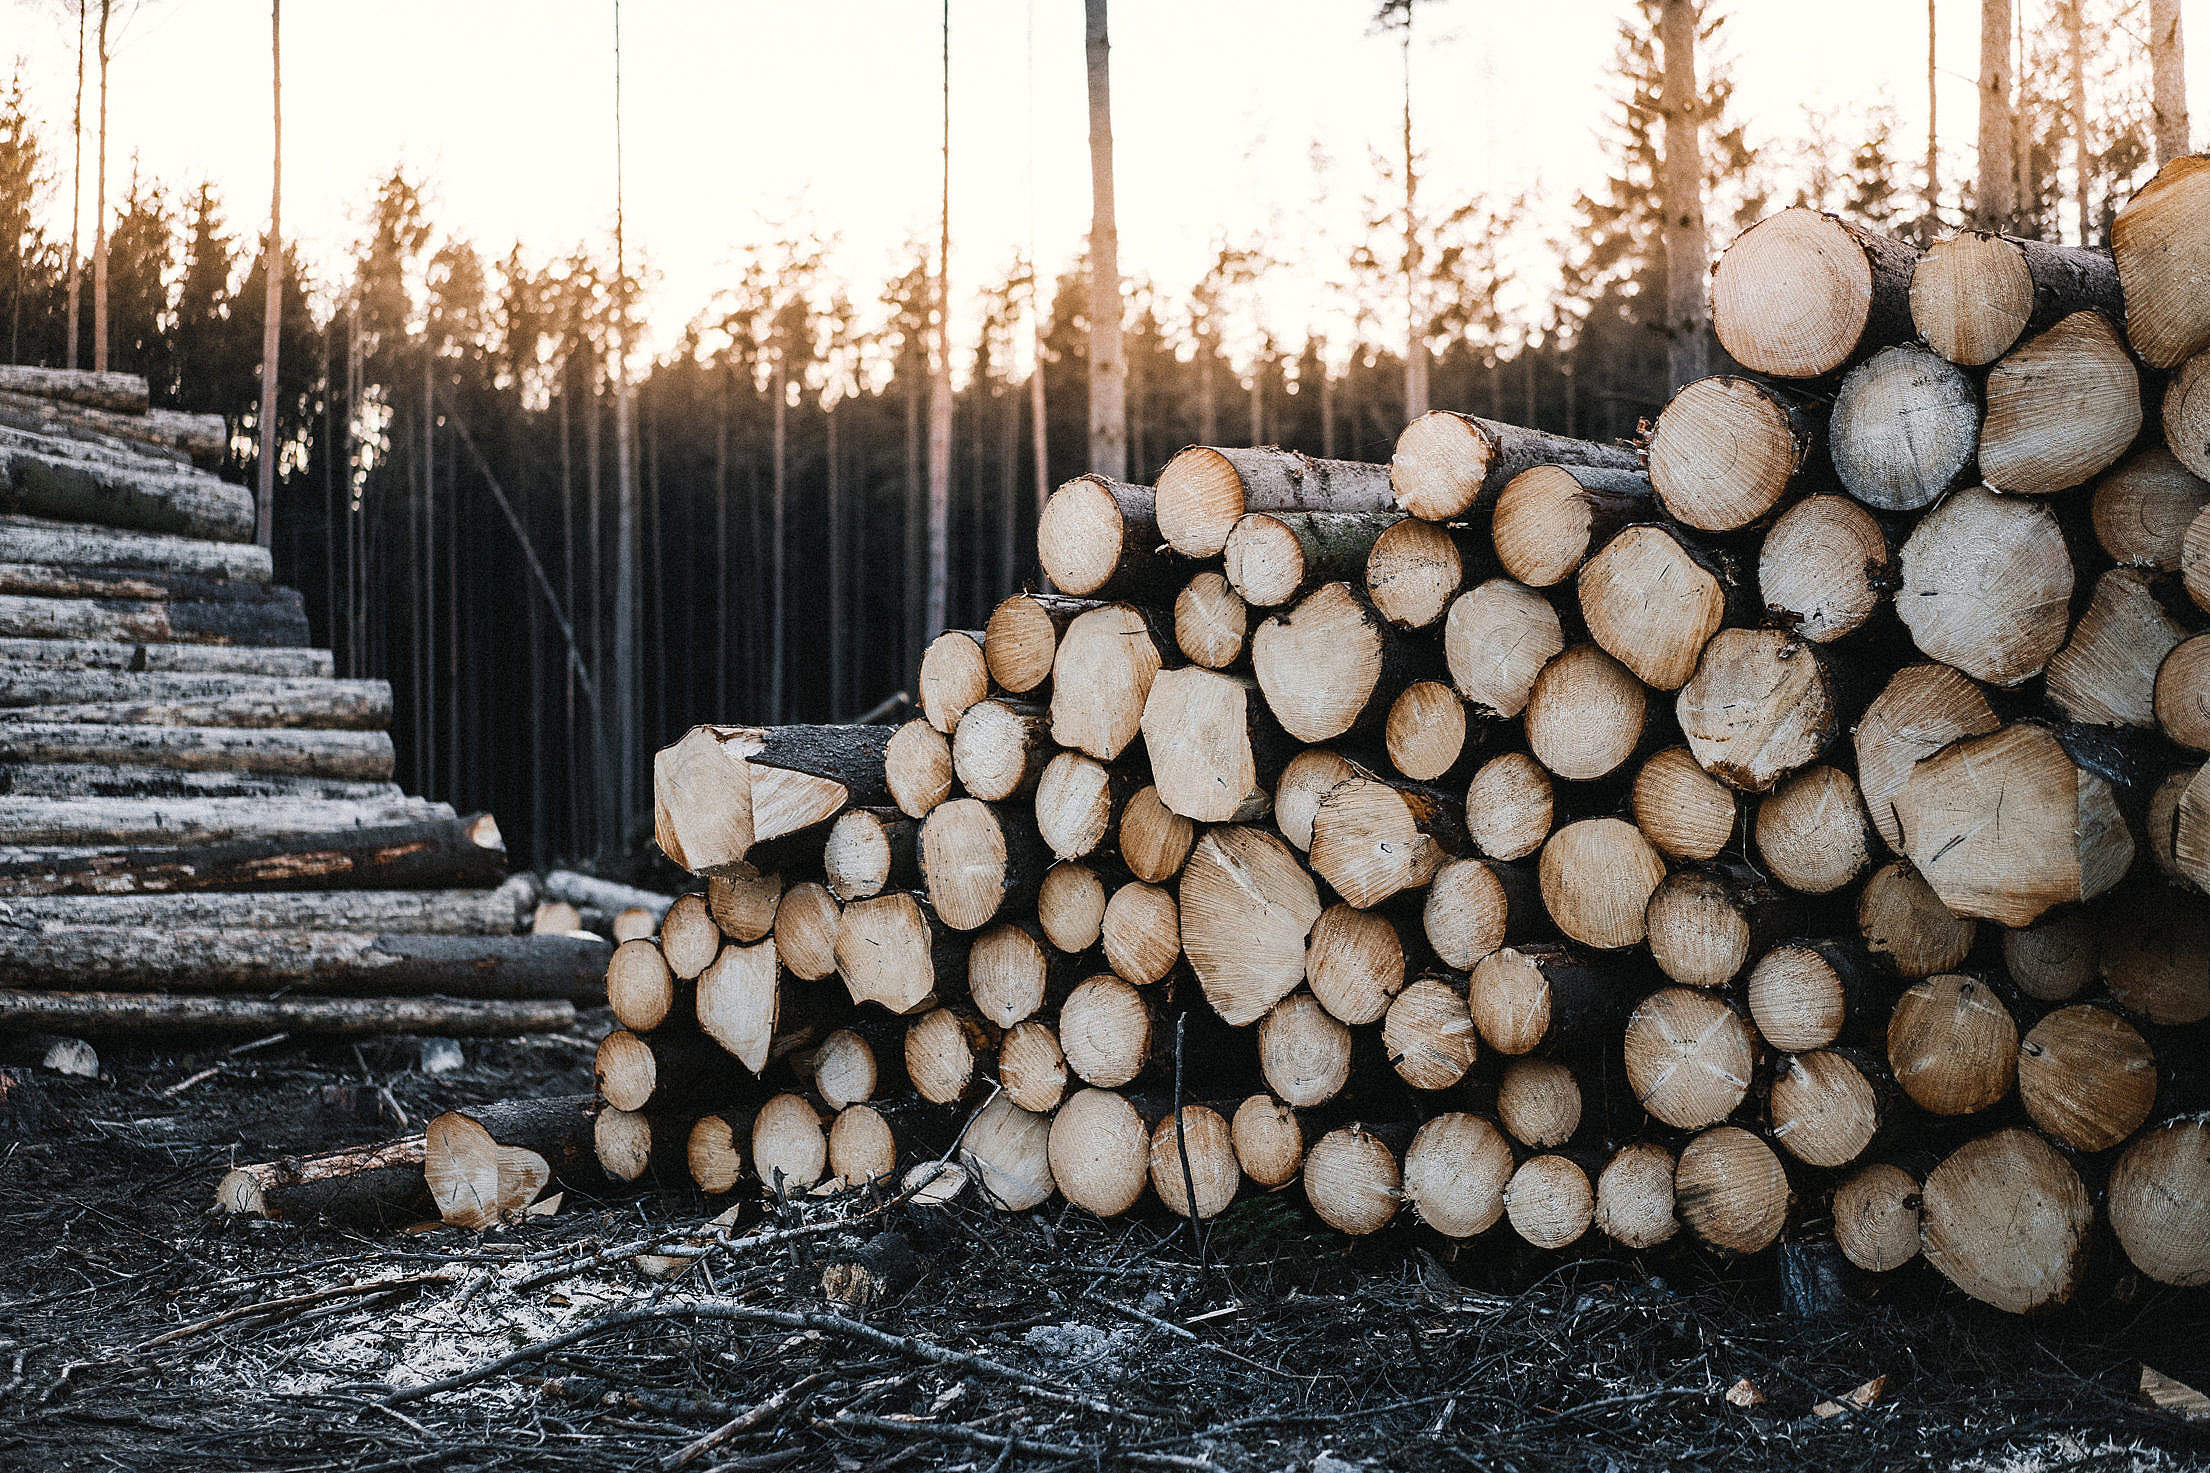 Download Pile of Felled Wood Logs Free Stock Photo